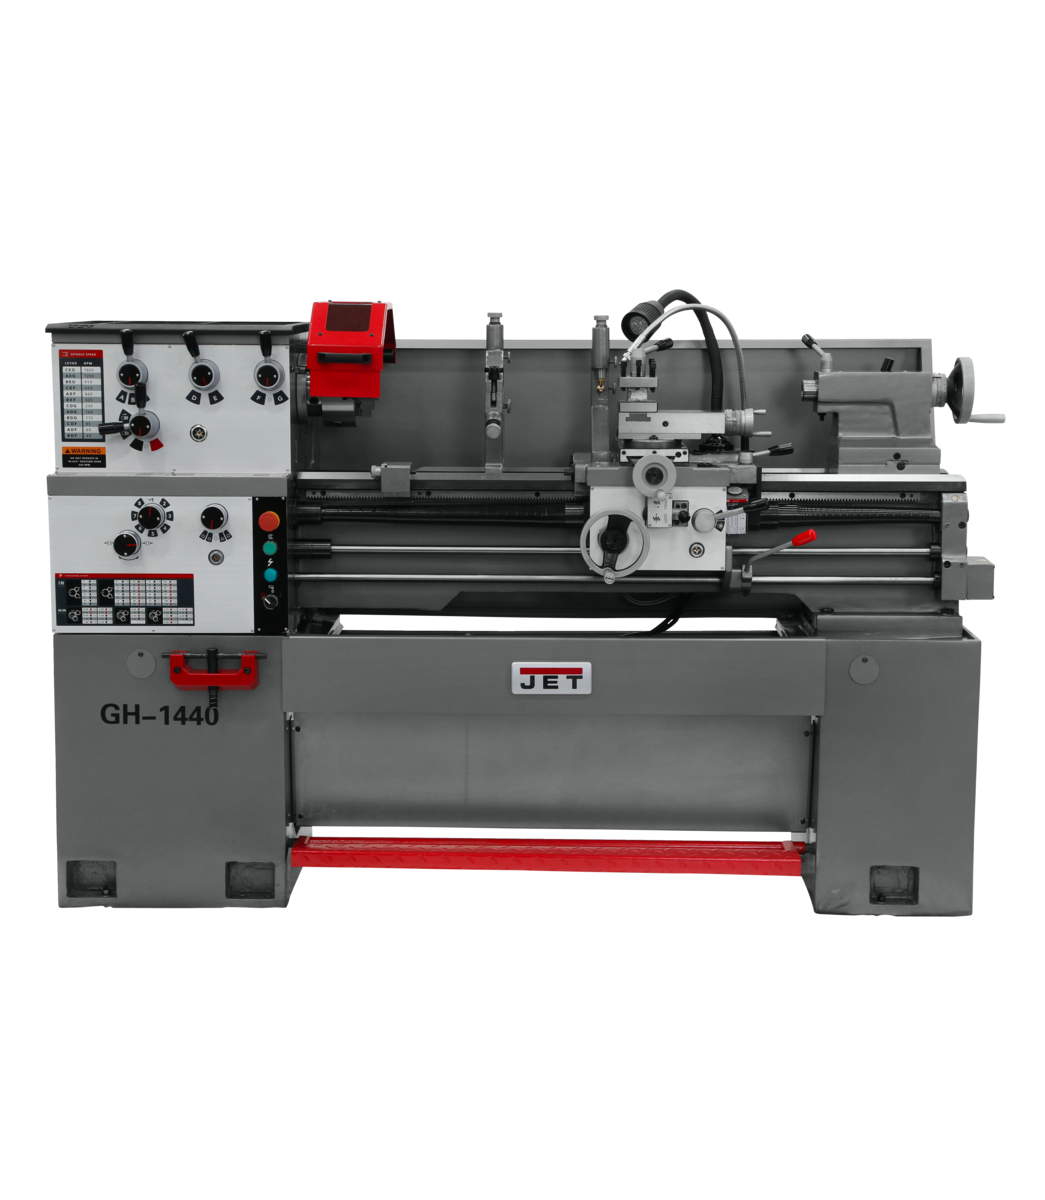 GH-1440-1 Lathe with Acu-Rite 203  DRO and Taper Attachment